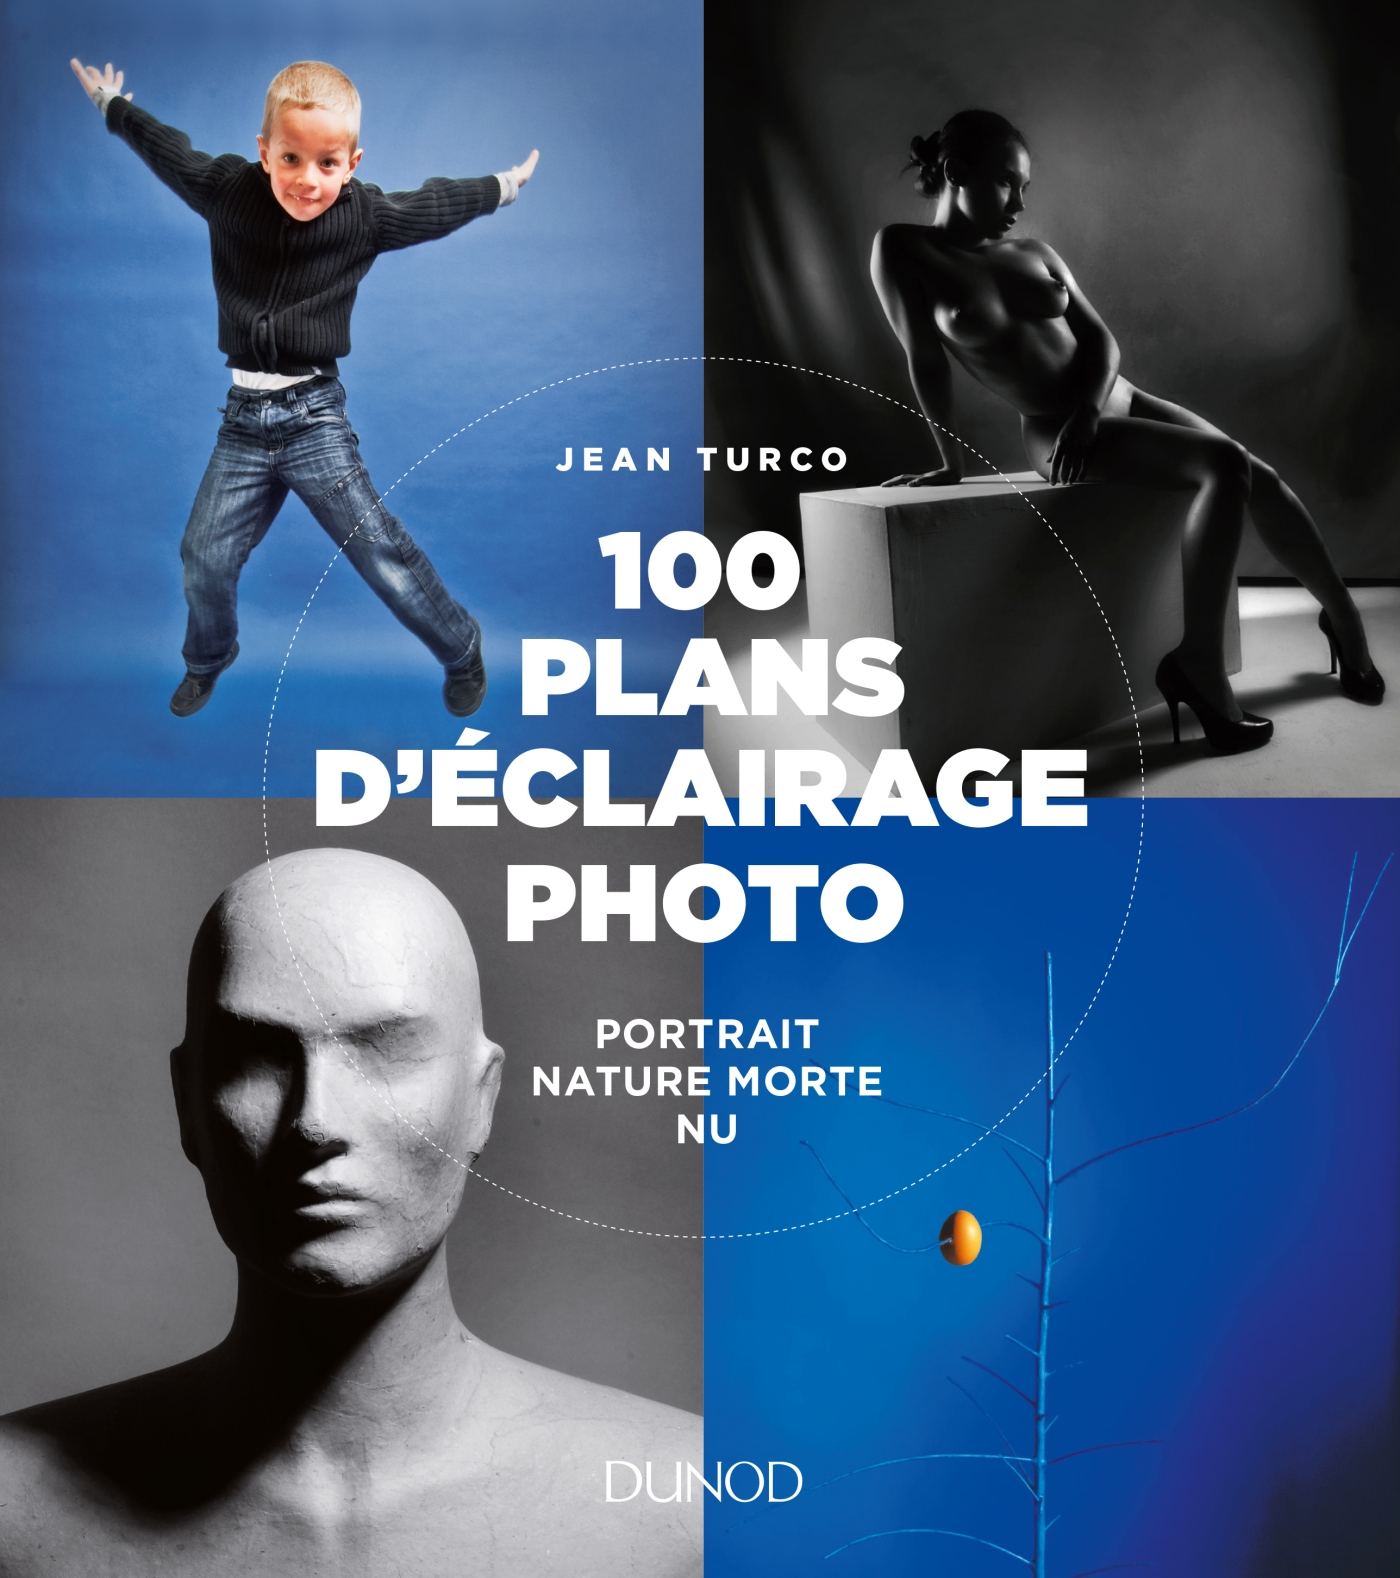 100 plans d'éclairage photo